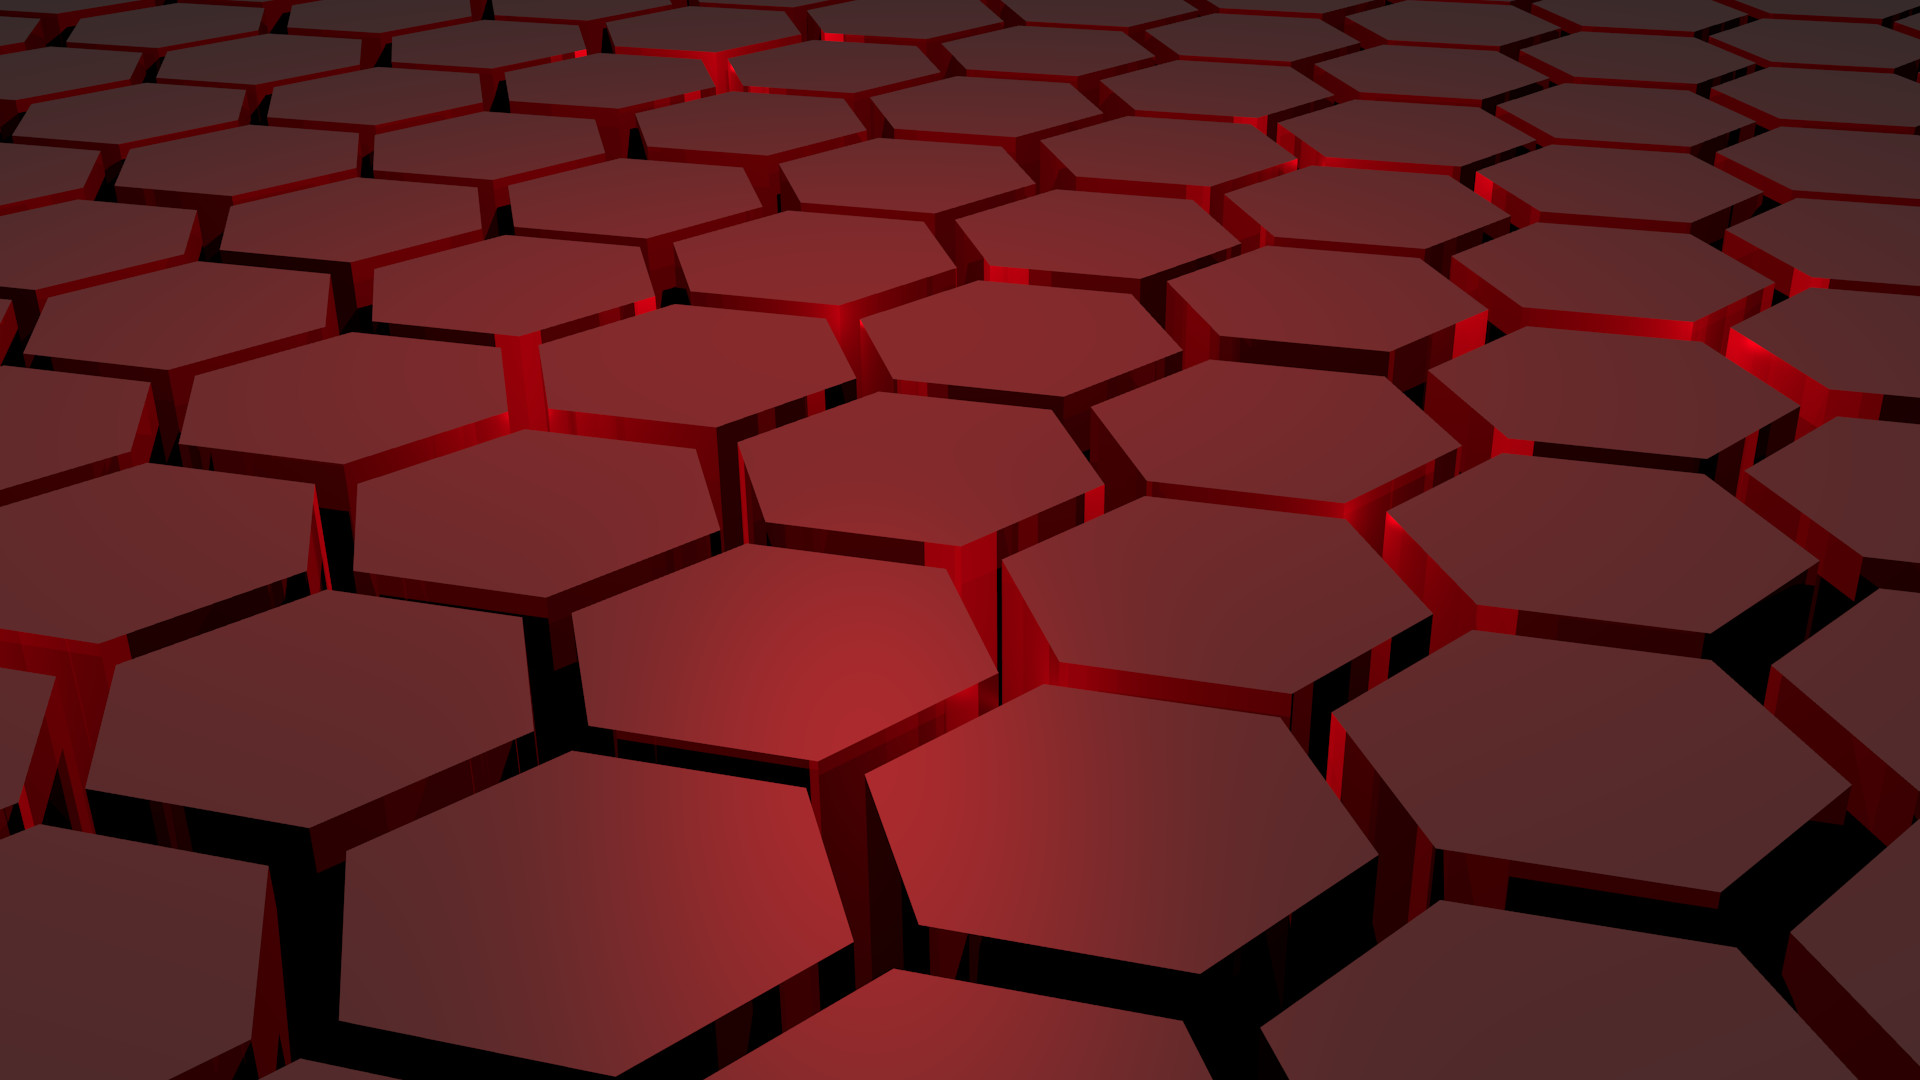 Shattered Hex Wallpaper Full HD By Artyom17